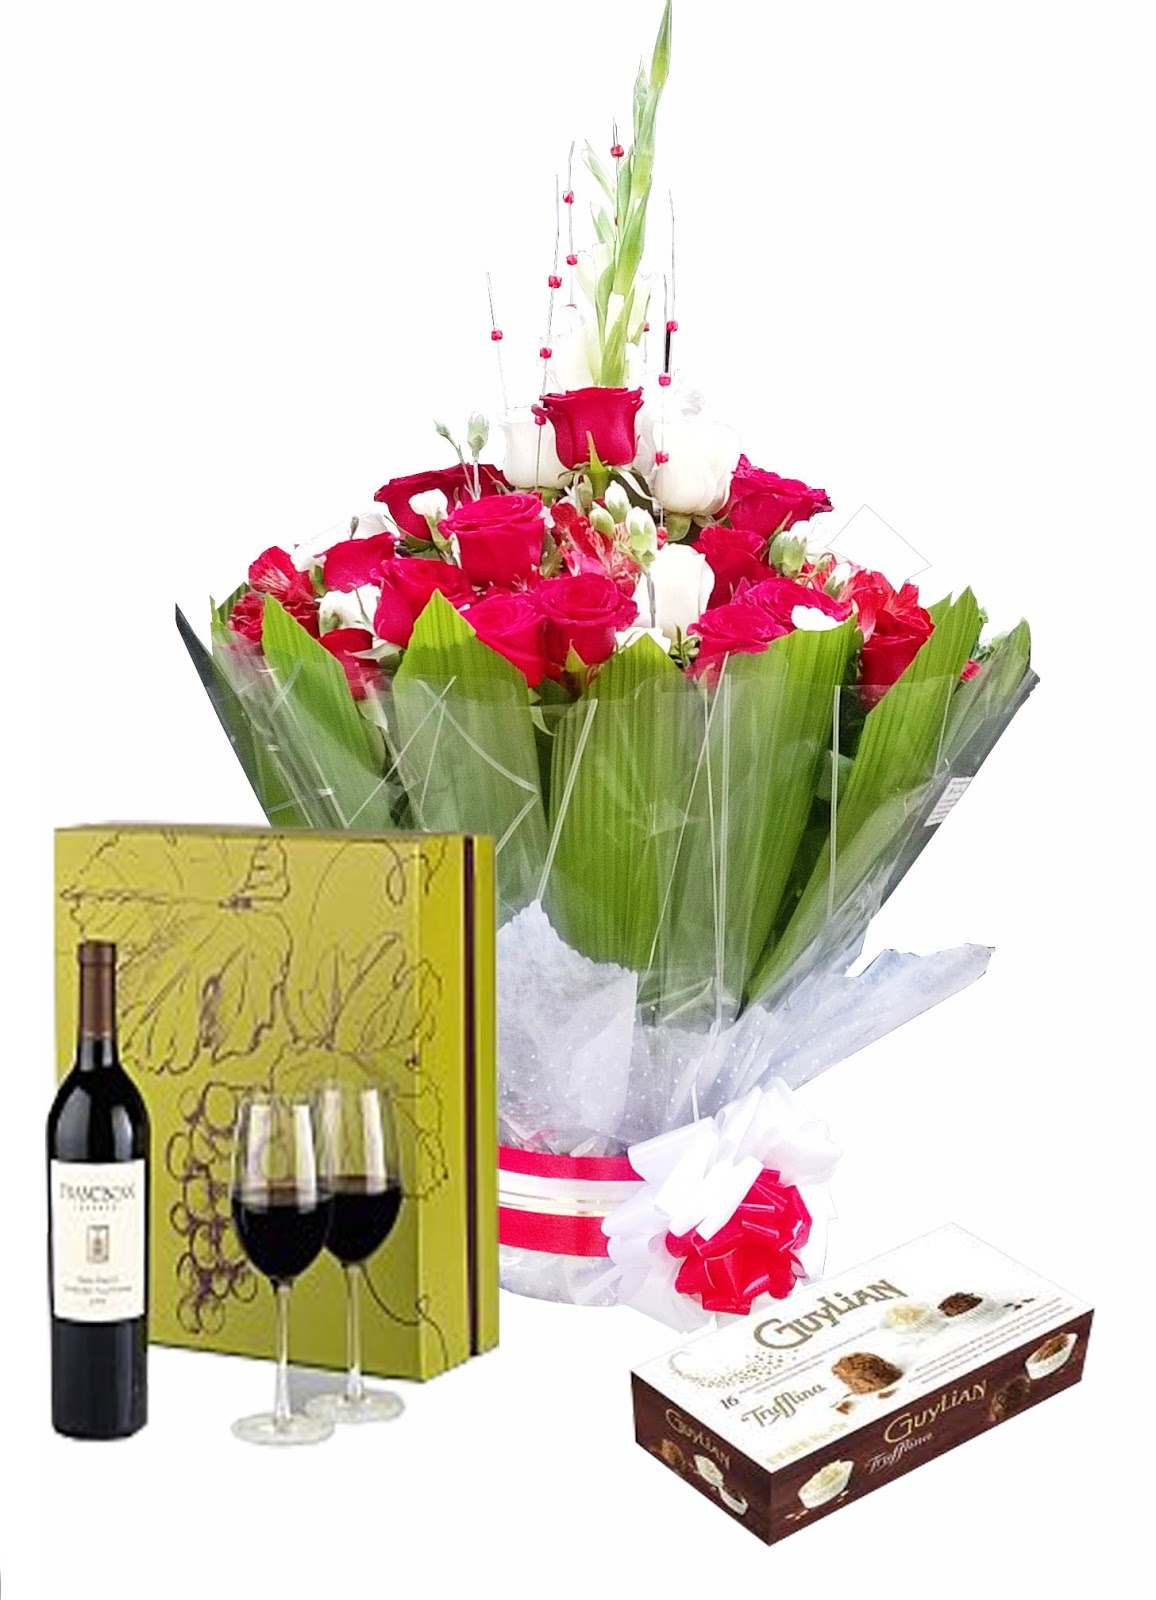 Simona flowers nothing says happy birthday like a gift of fresh flowers from simona flowers nairobi send birthday flowers online with easy ordering and a wide selection izmirmasajfo